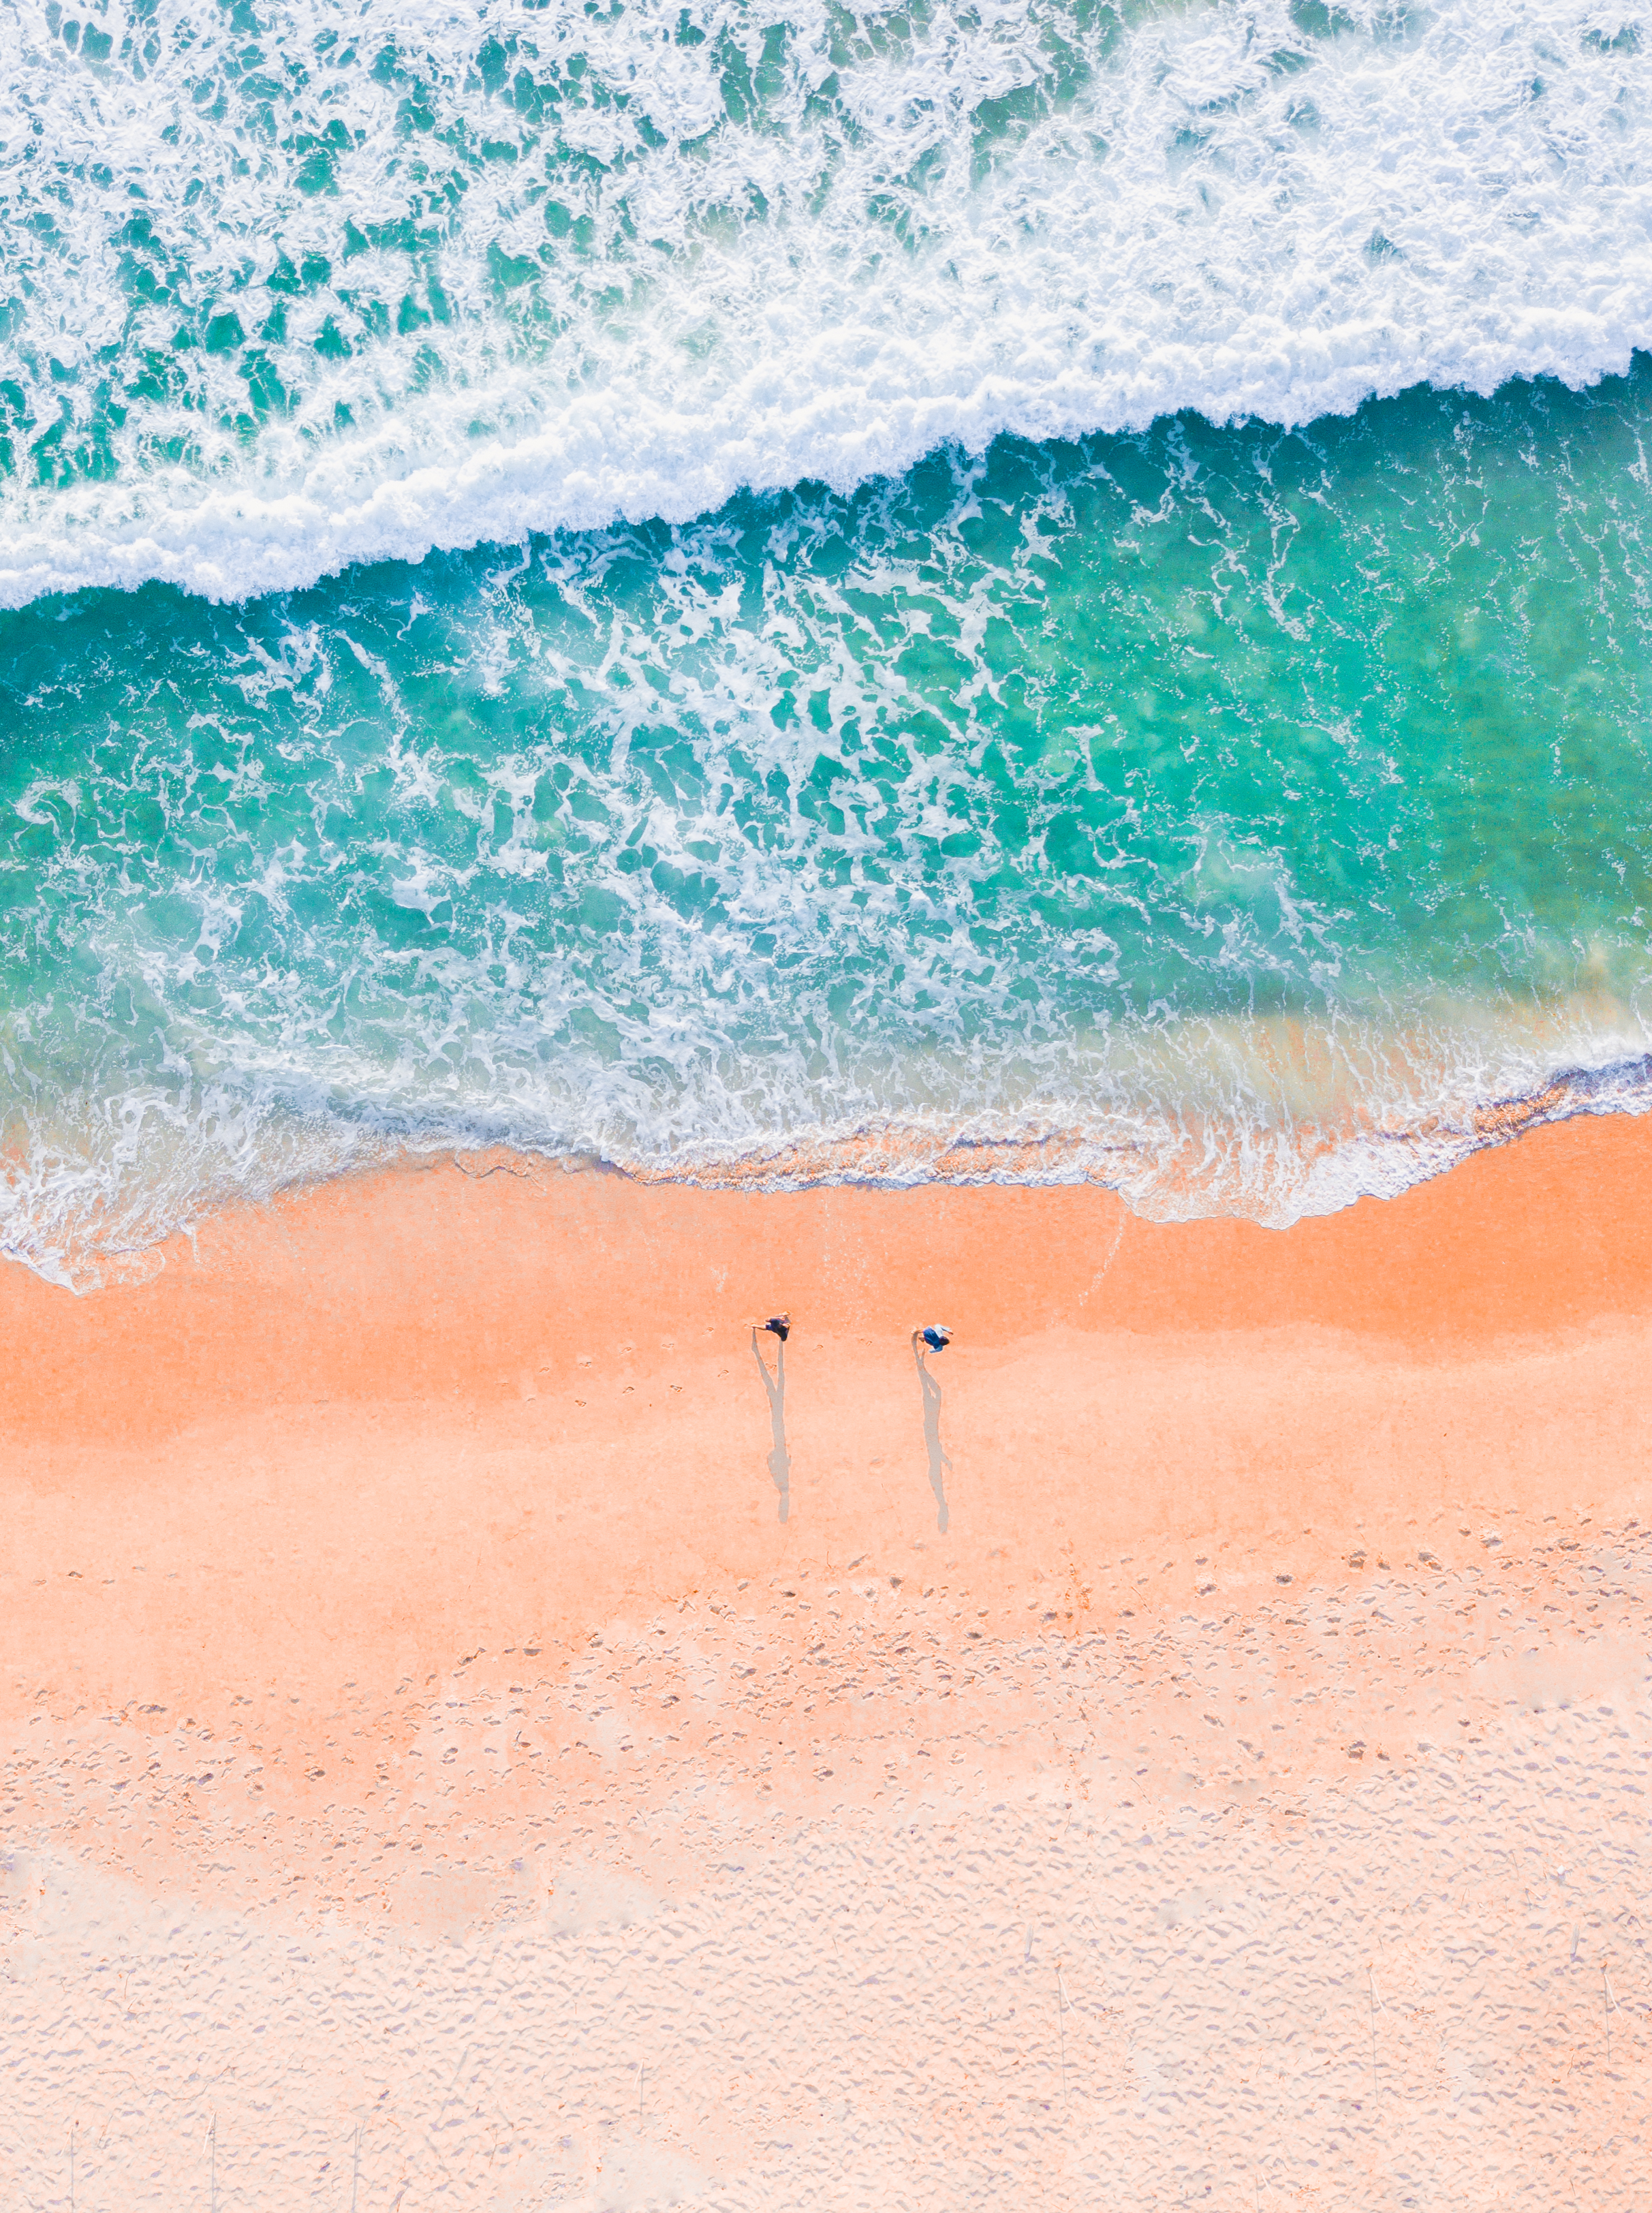 aerial photo of two people on a sandy beach